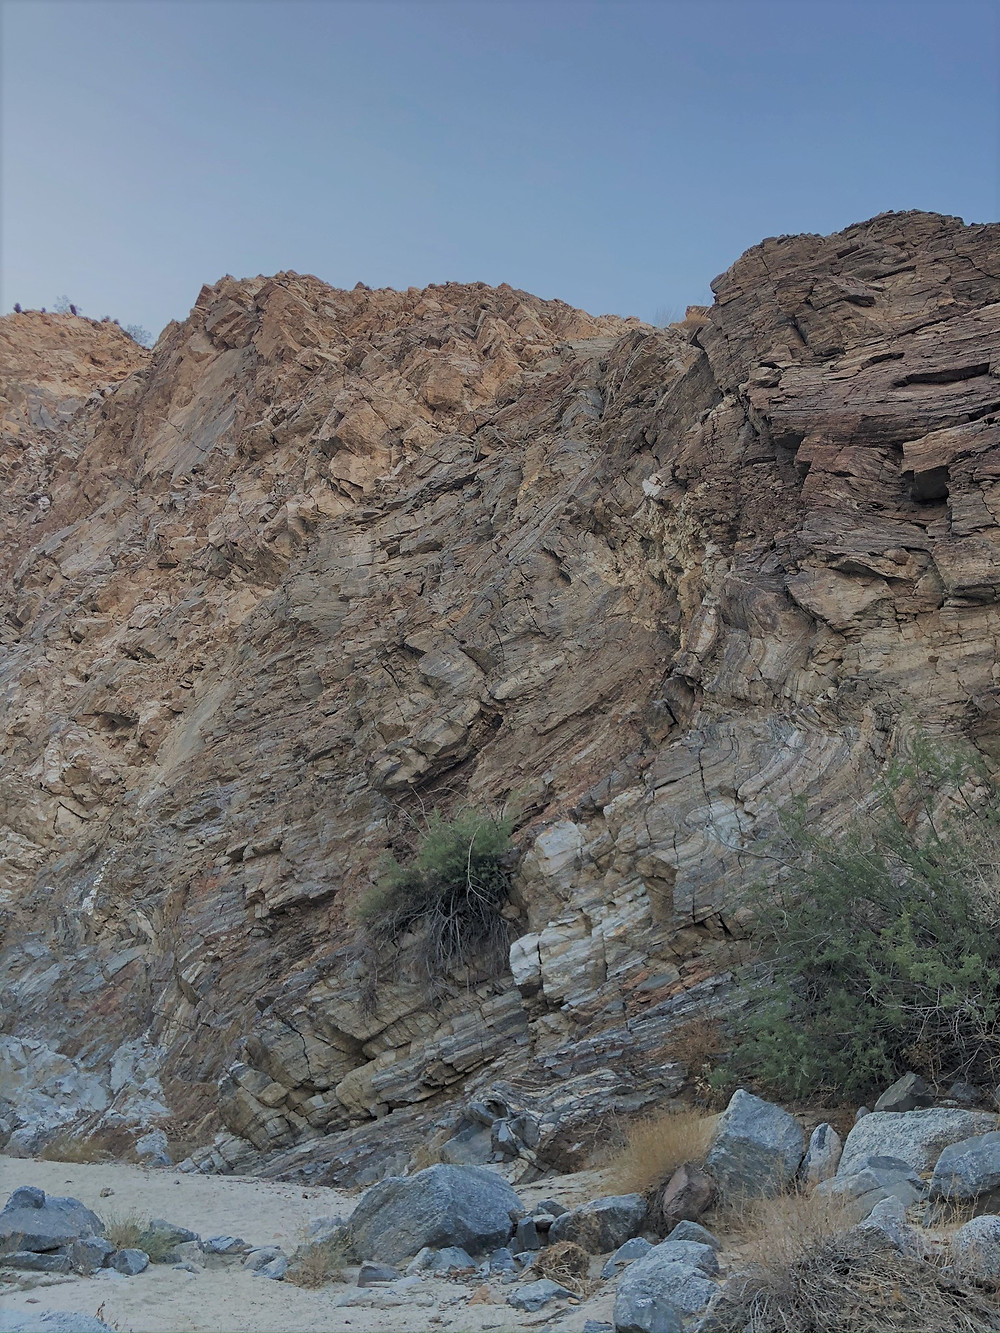 Syncline fold in Carrizzo Canyon walls in the Santa Rosa Mountains in Palm Desert CA